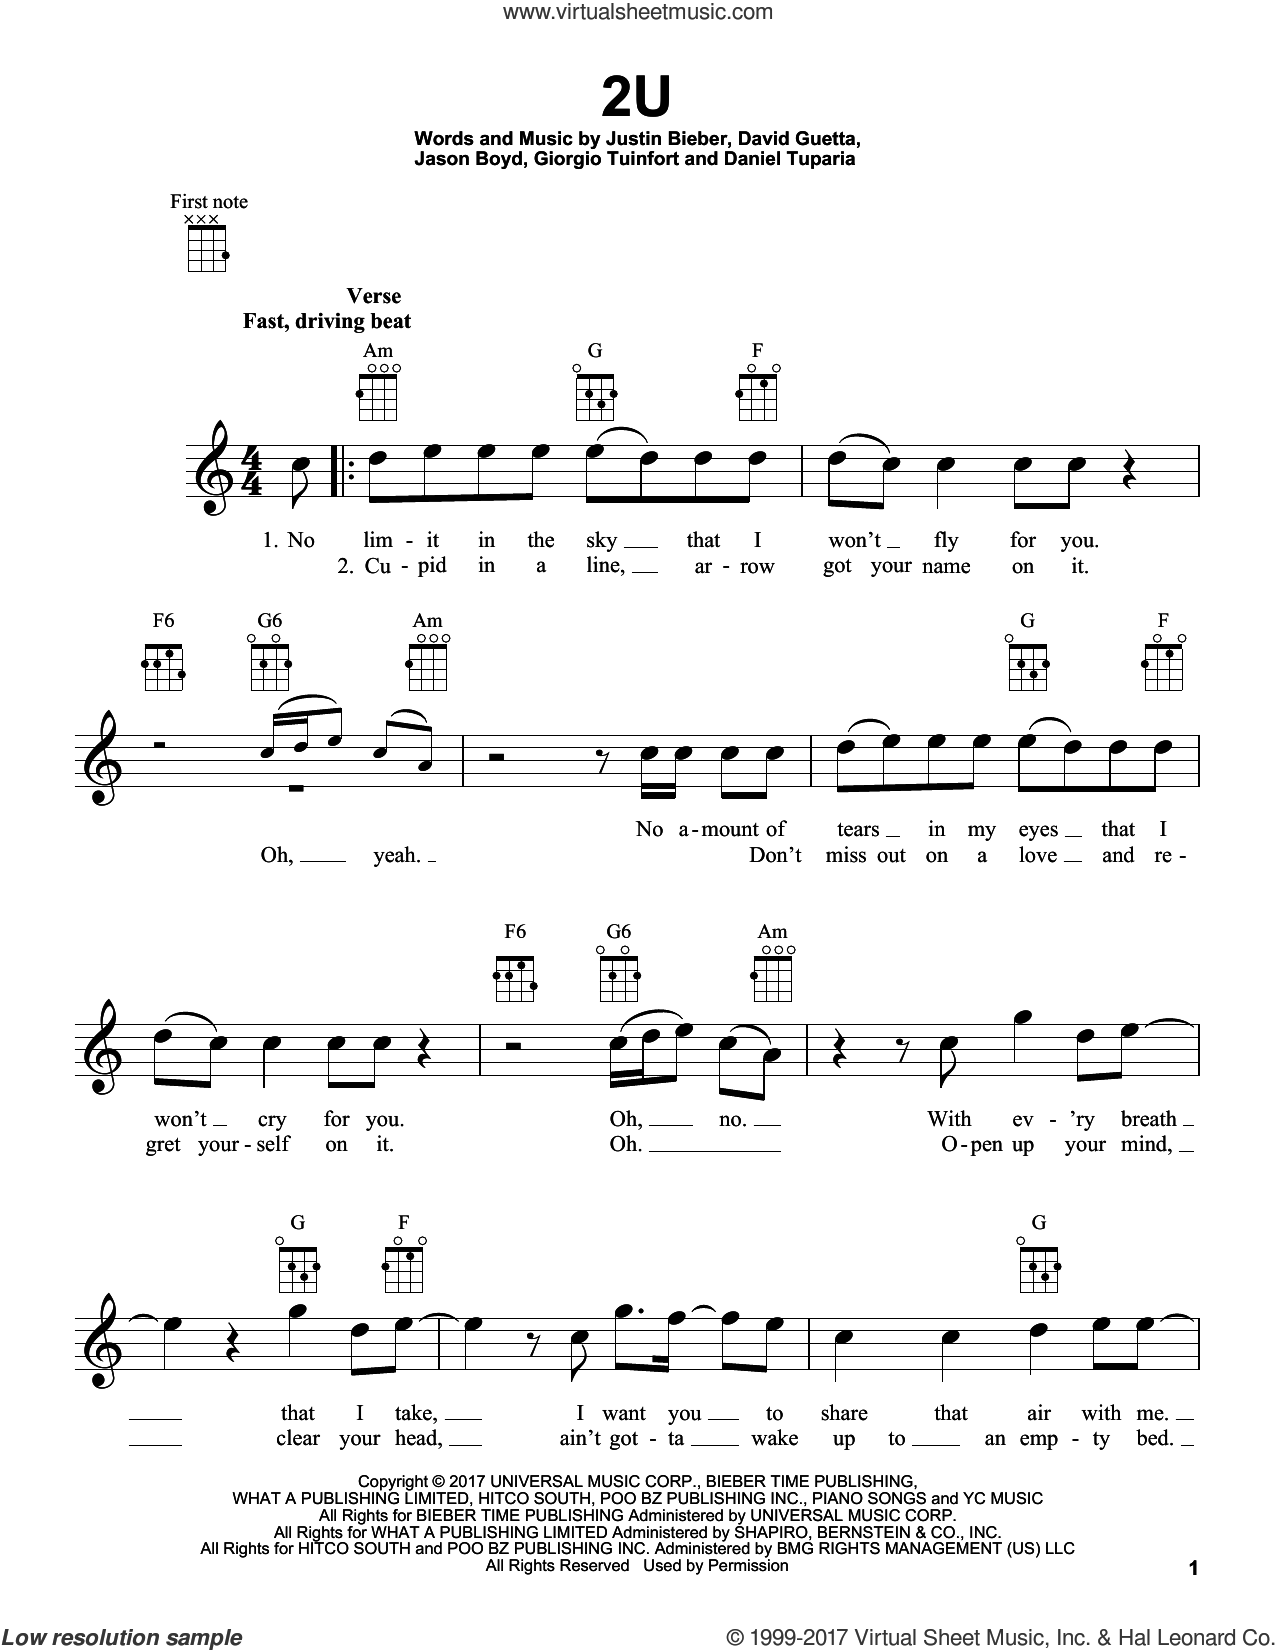 2U sheet music for ukulele by Justin Bieber & David Guetta, David Guetta, Giorgio Tuinfort and Justin Bieber. Score Image Preview.